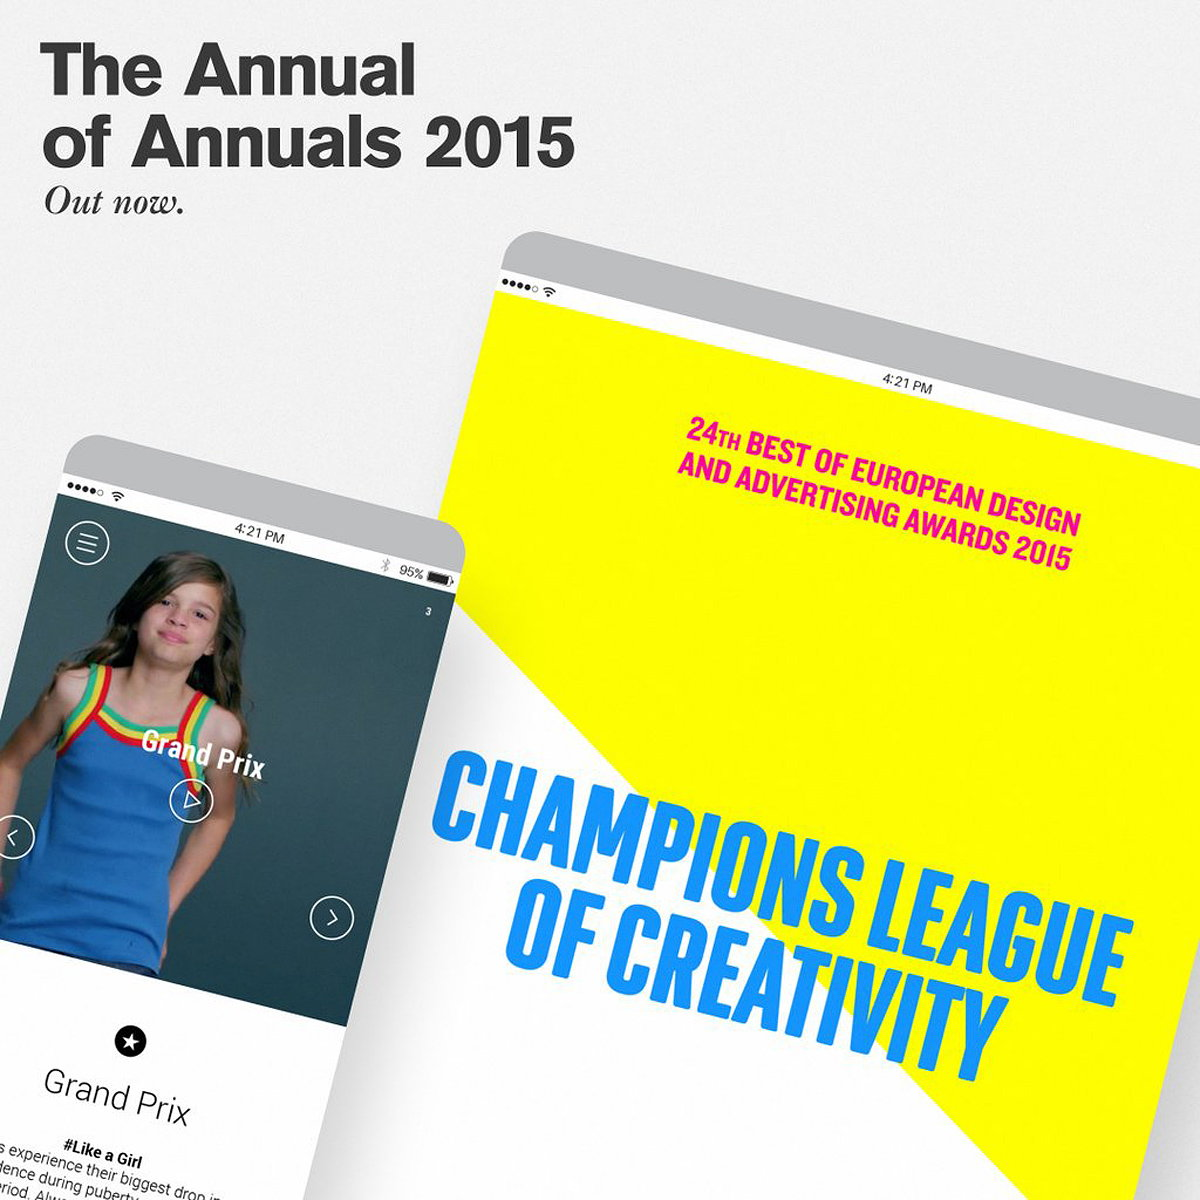 ADCE Releases the Annual of Annuals 2015